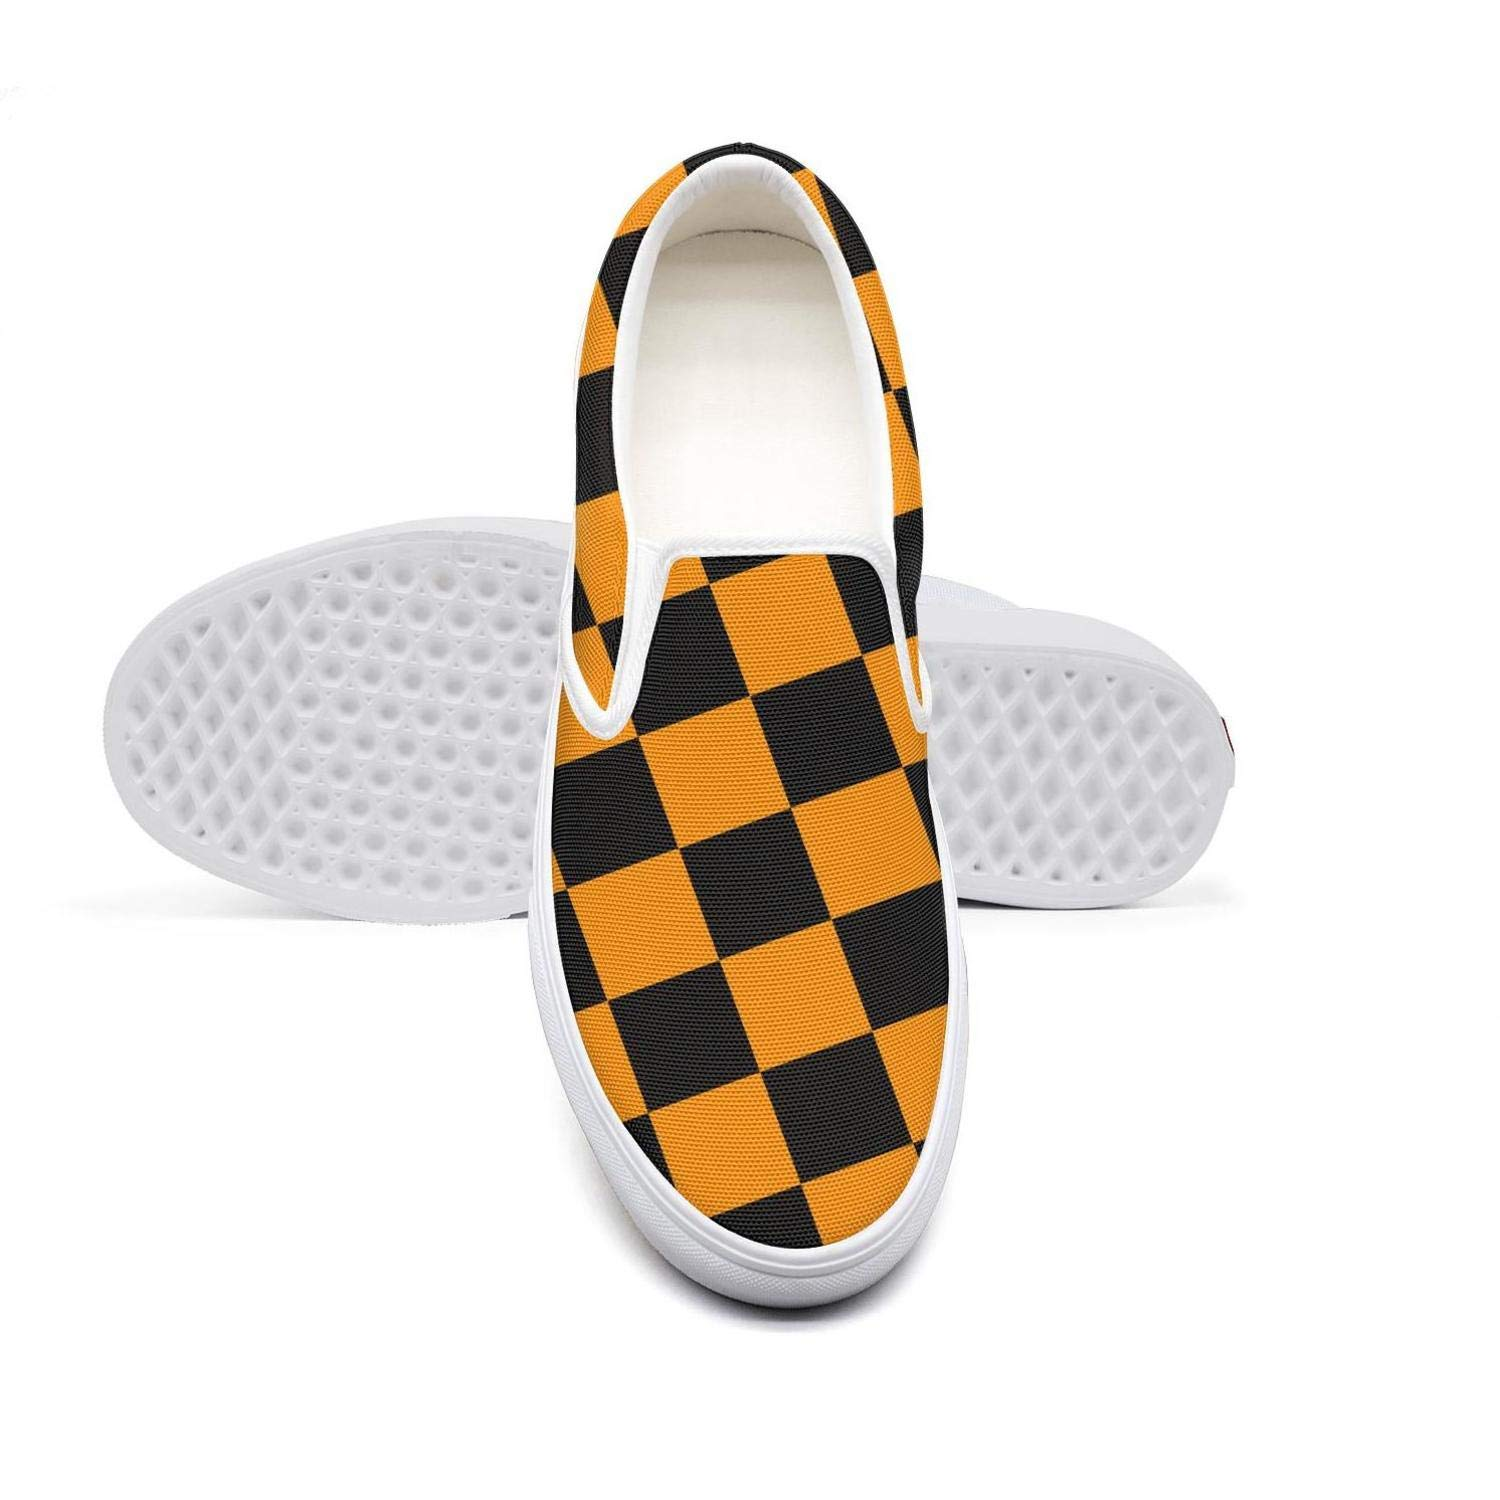 Black Orange Checkered Squares Womens Slip-on Loafer Fashion Sneaker Casual Flat Walking Shoes Canvas